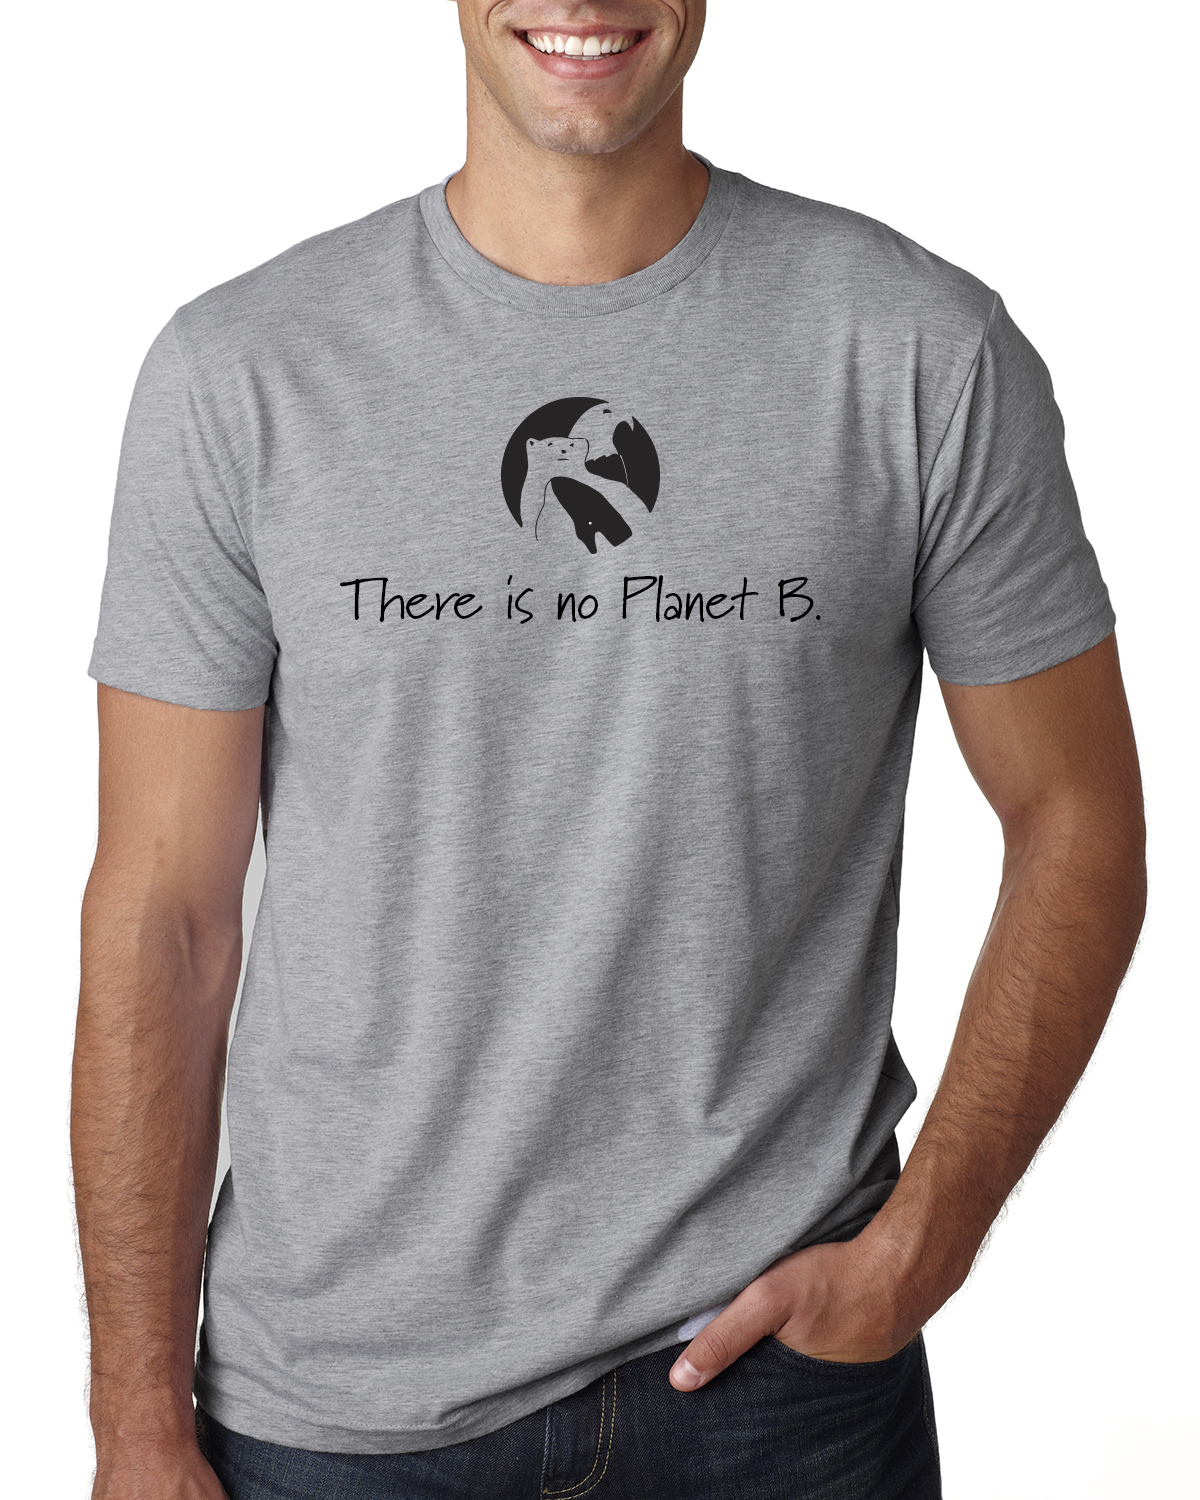 There is No Planet B Short sleeve t-shirt for men/unisex (Heather Gray)